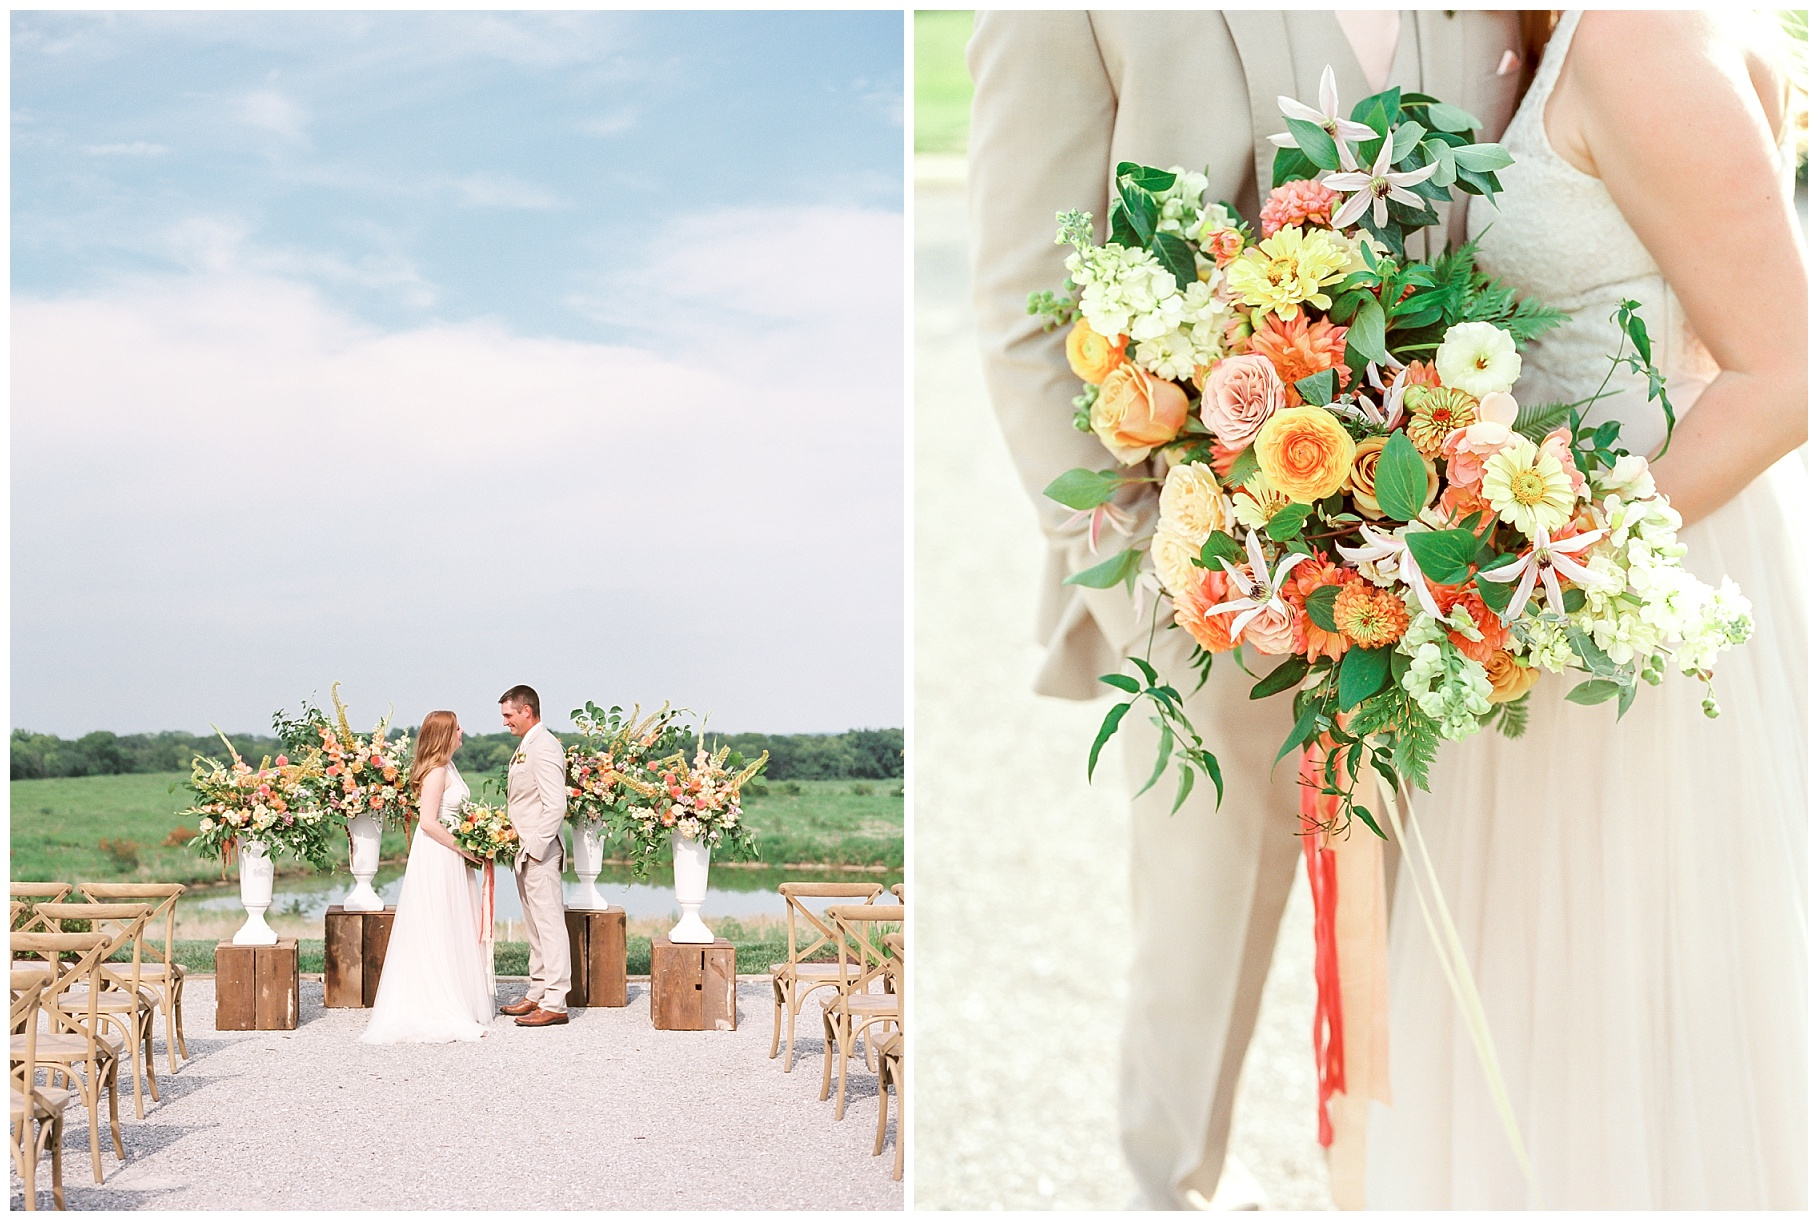 Late Summer Wedding With Pastel Toned Soiree at Blue Bell Farm by Kelsi Kliethermes Photography Best Columbia Missouri Wedding Photographer_0079.jpg